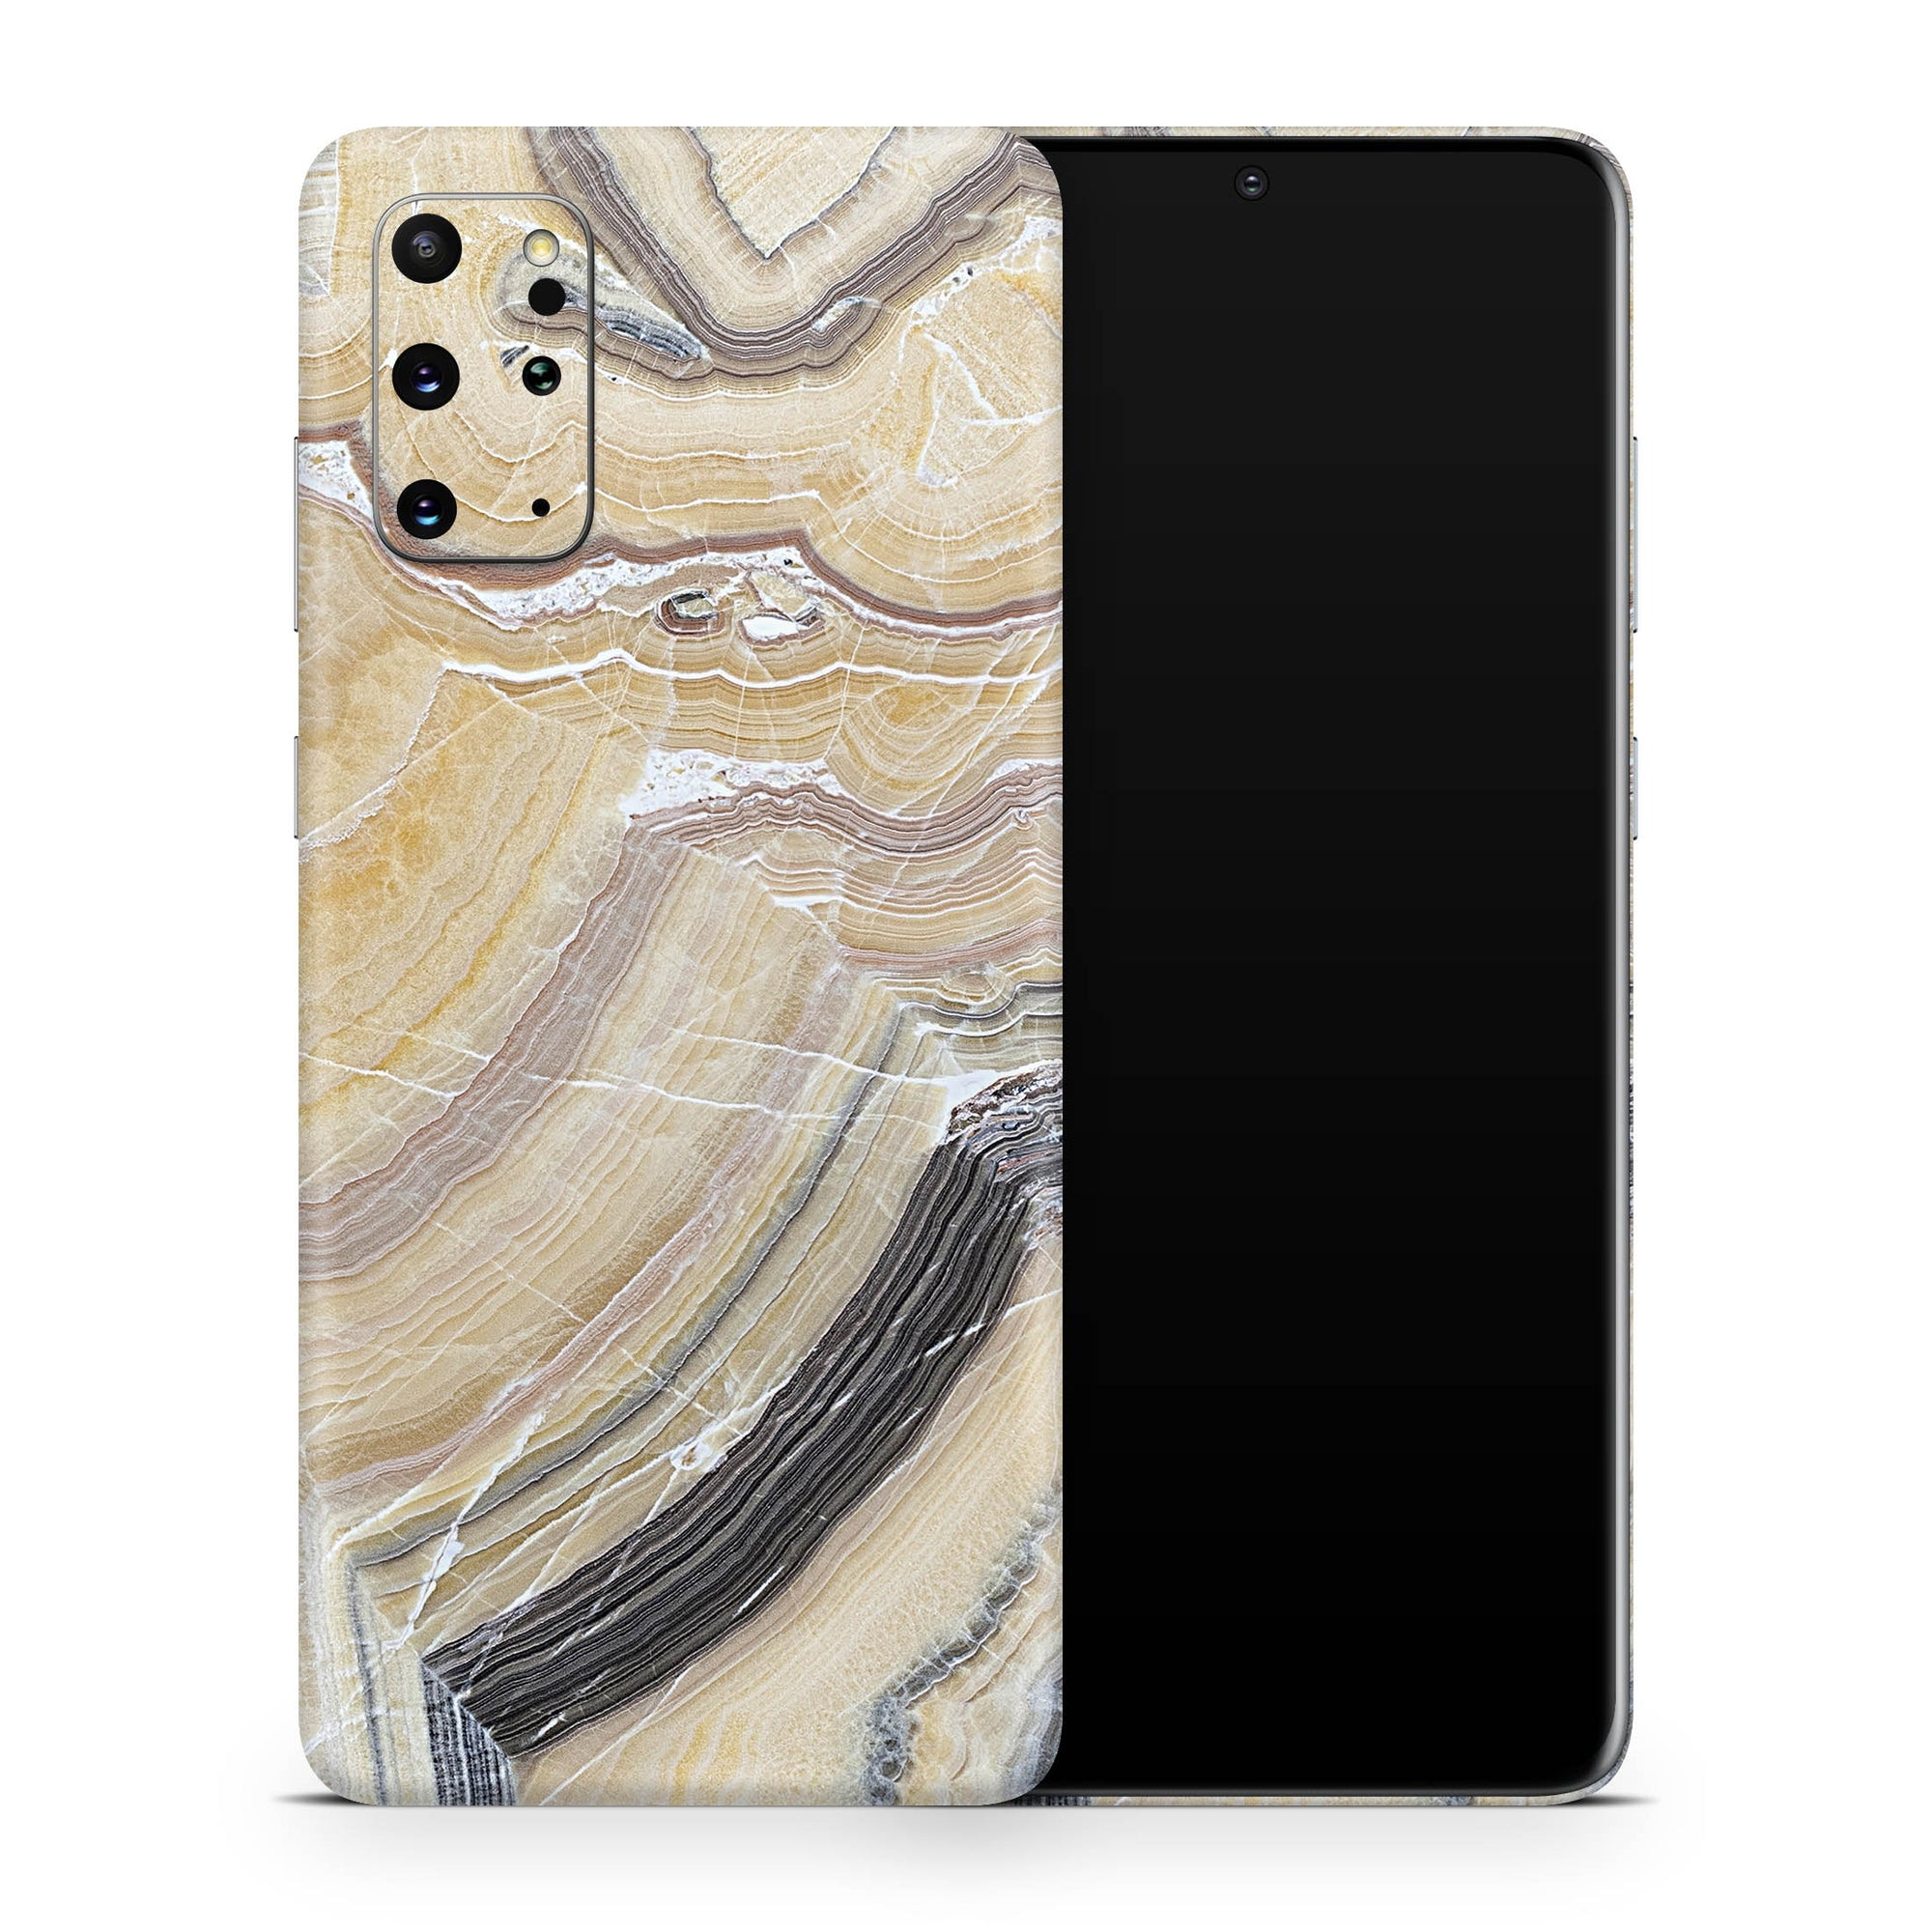 Butter Marble Galaxy S20 Ultra Skin + Case-Uniqfind